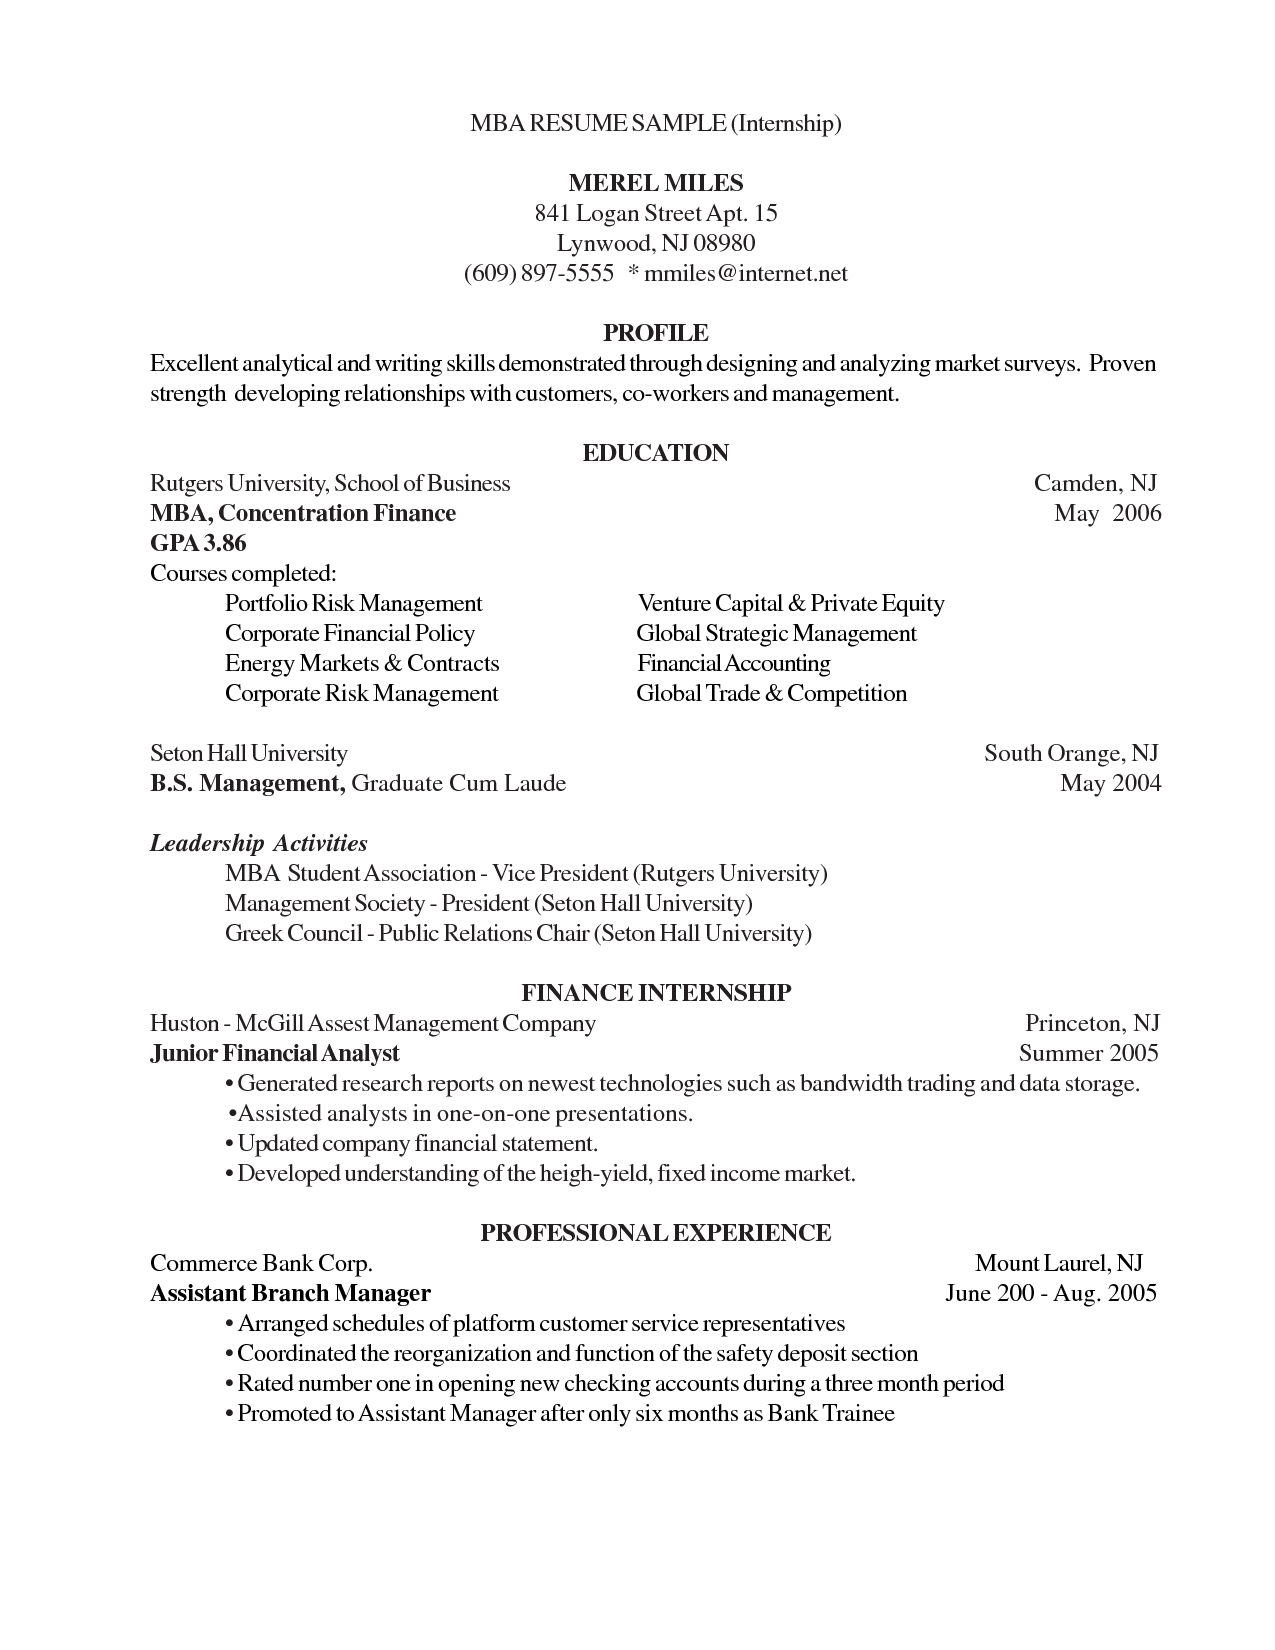 Resume Format Template Resume Sample Template Word Examples Resumes Responsibilities